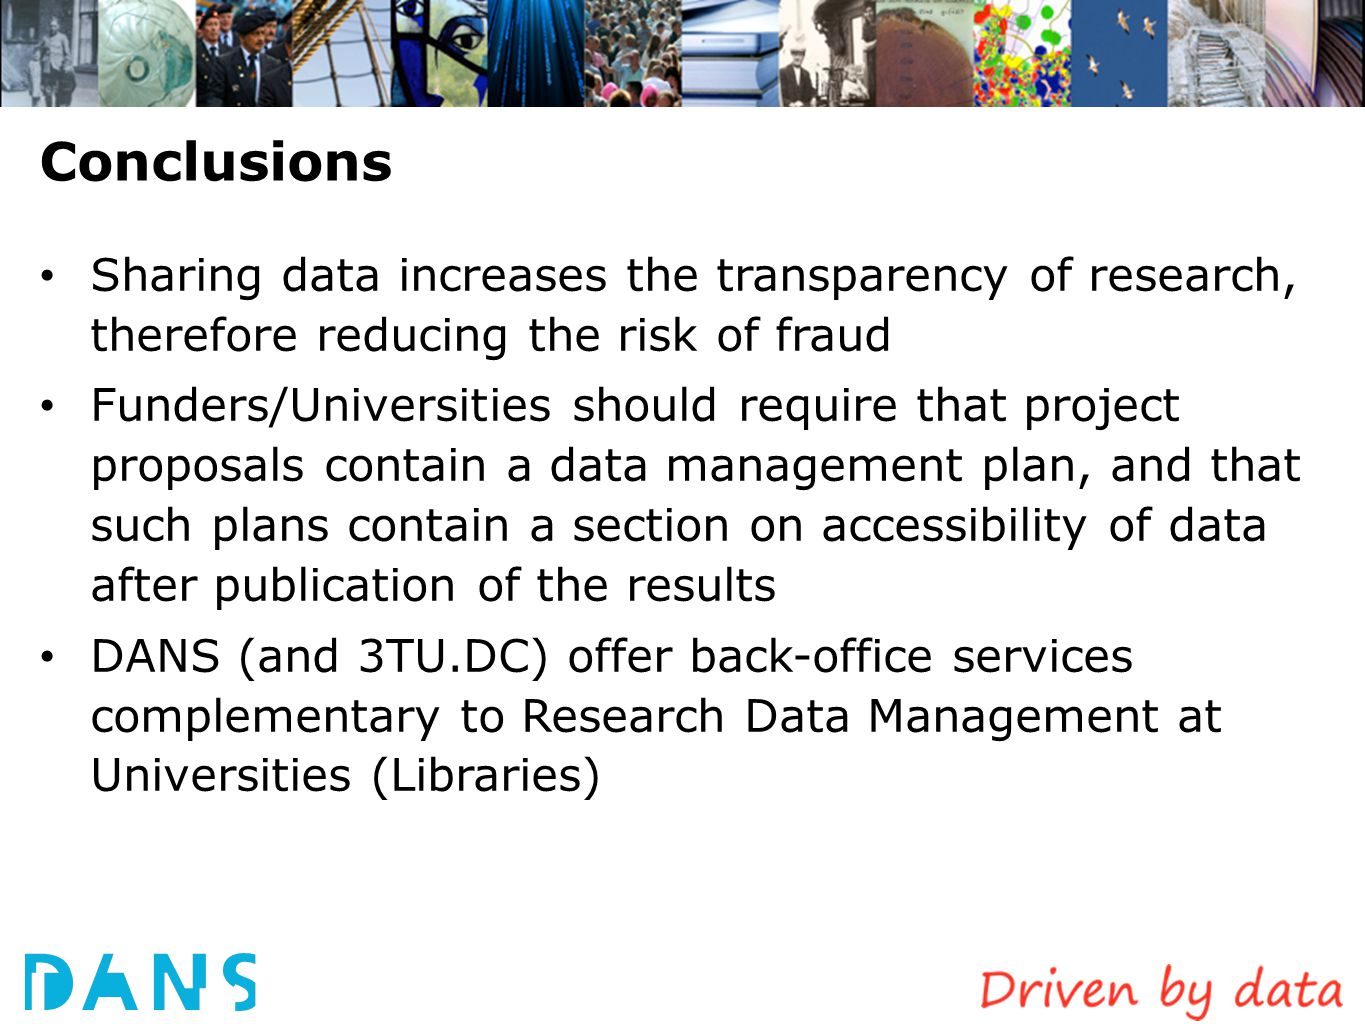 Conclusions Sharing data increases the transparency of research, therefore reducing the risk of fraud.